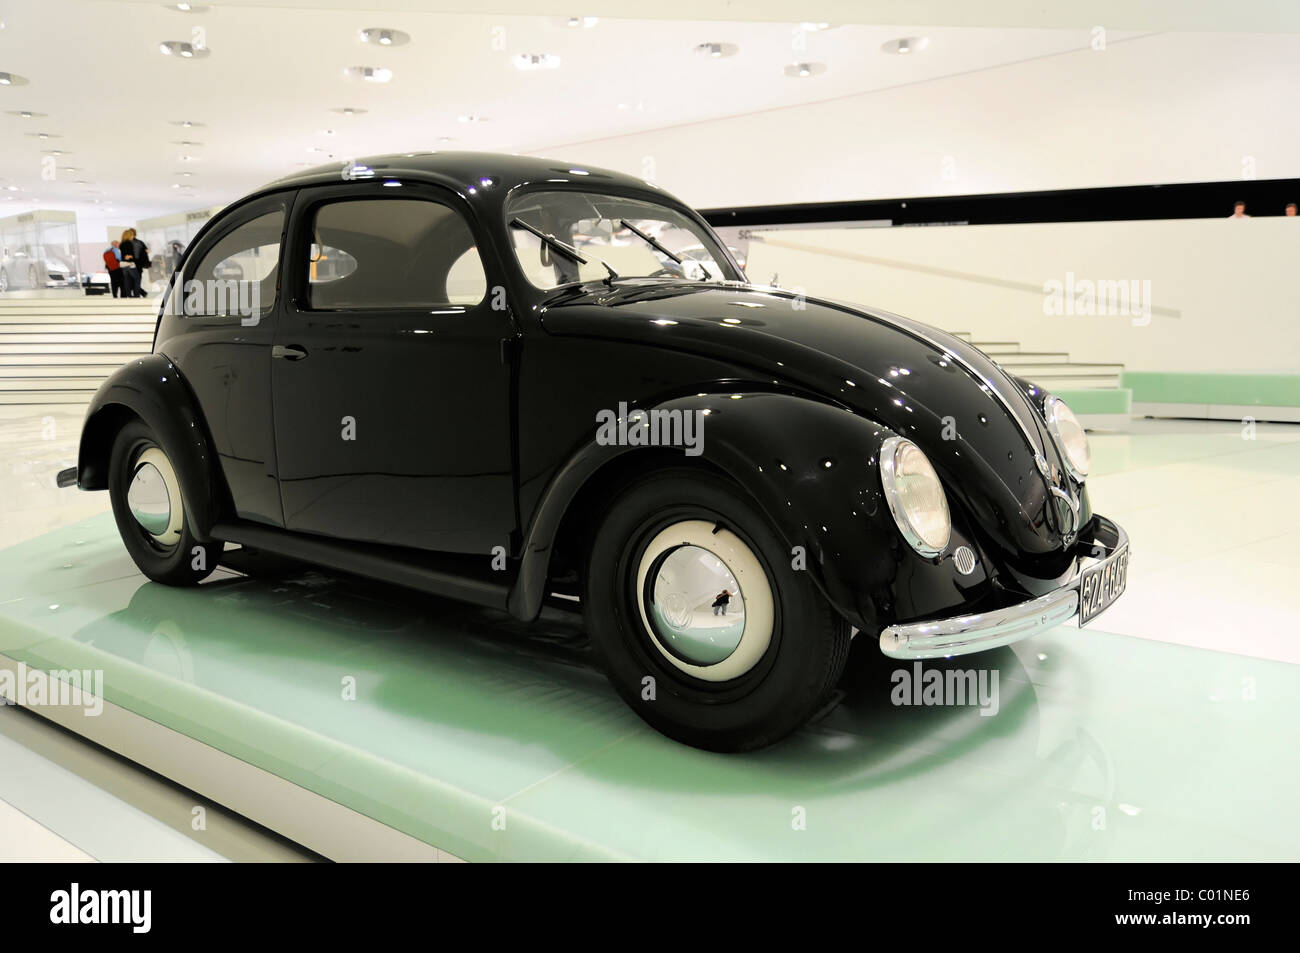 Interior Vw Beetle Stock Photos Amp Interior Vw Beetle Stock Images Alamy